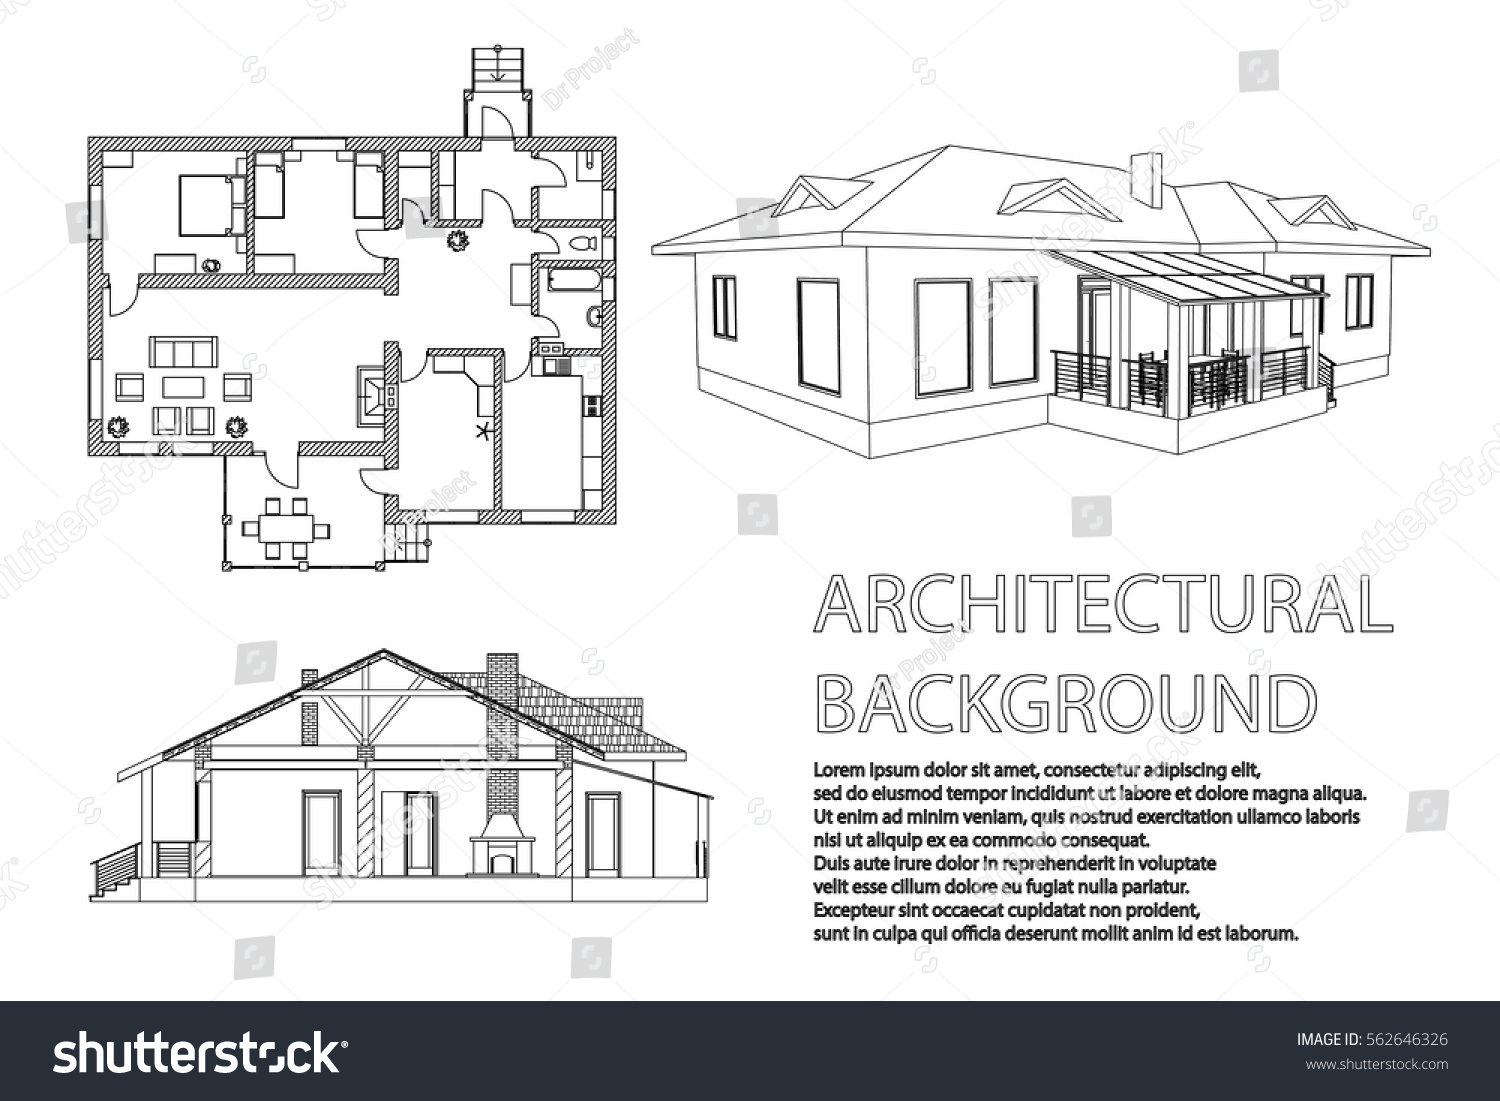 Perspective 3 D Floor Plan Cross Section Stock Vector (Royalty Free on mansion floor plans, drawing home layout, drawing home design, drawing home interiors, drawing of your house, drawing home blueprints, house floor plans, the word floor plans, draw room floor plans, simple floor plans, design for drawings plans, drawing building plans,